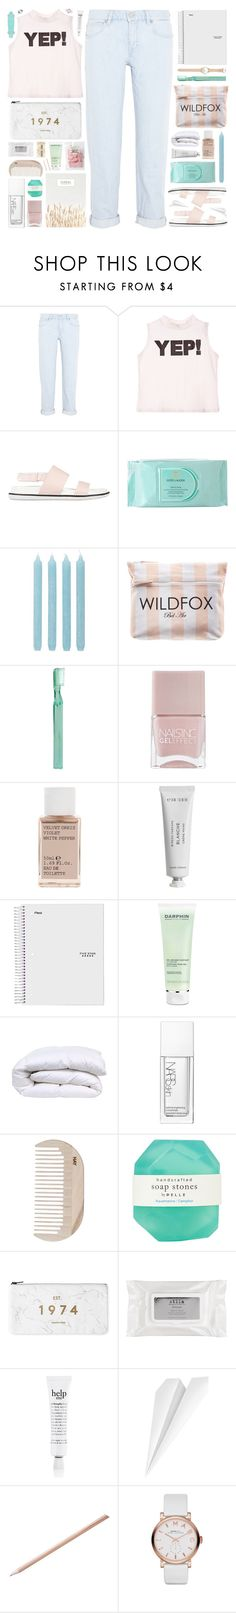 """""""Yep!"""" by sarahkatewest ❤ liked on Polyvore featuring MiH Jeans, Senso, Estée Lauder, Pier 1 Imports, Wildfox, Supersmile, Nails Inc., Korres, Byredo and Darphin"""